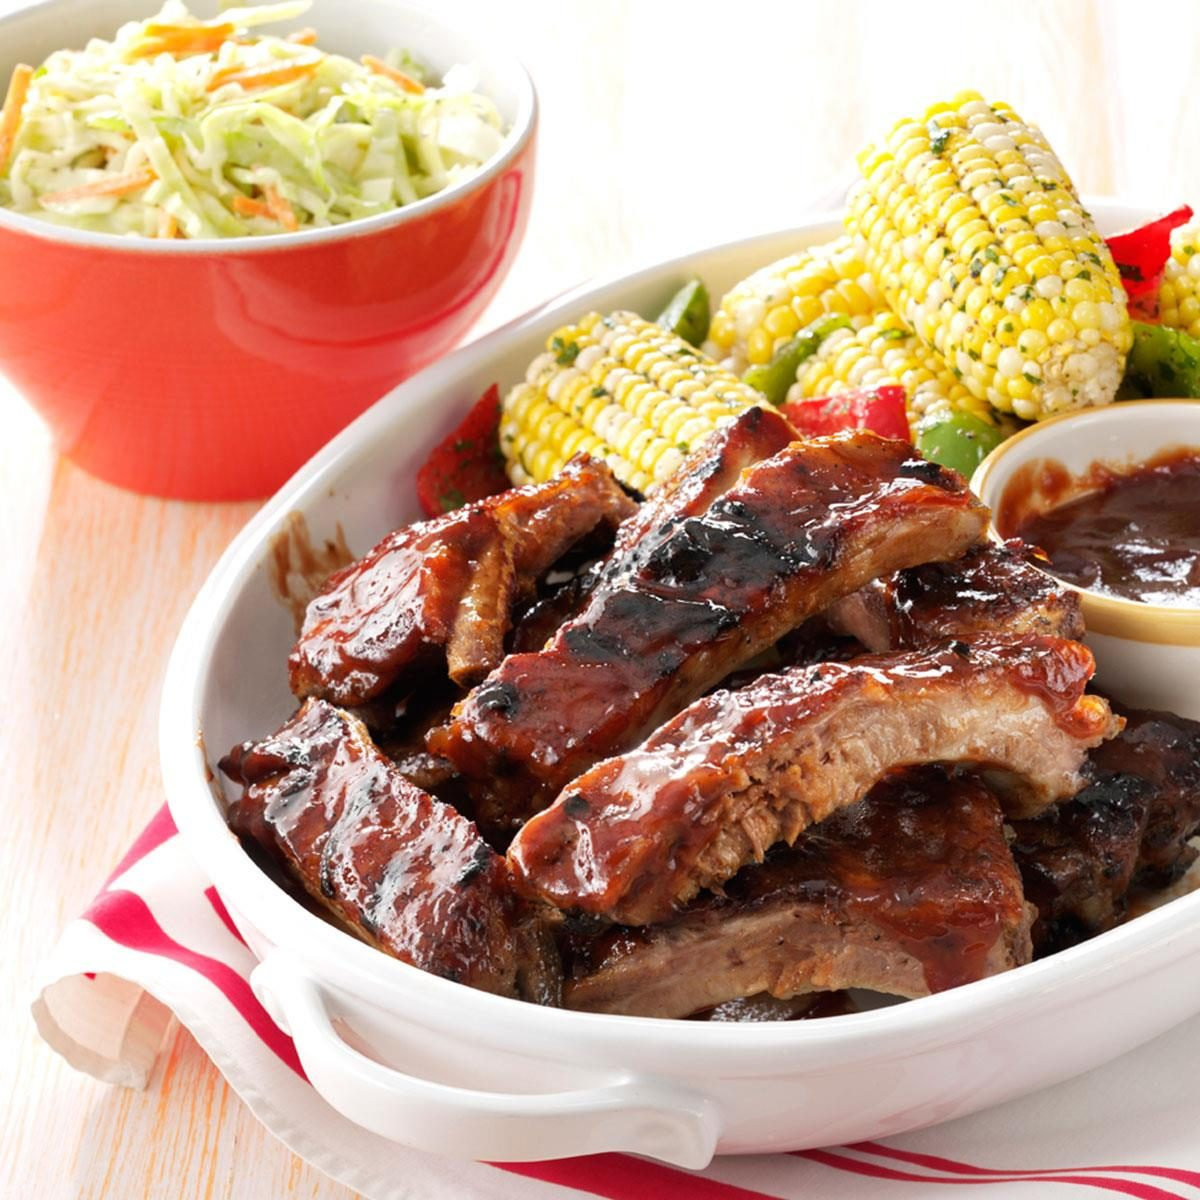 Honey beer braised ribs recipe taste of home for Side dishes for bbq ribs and chicken